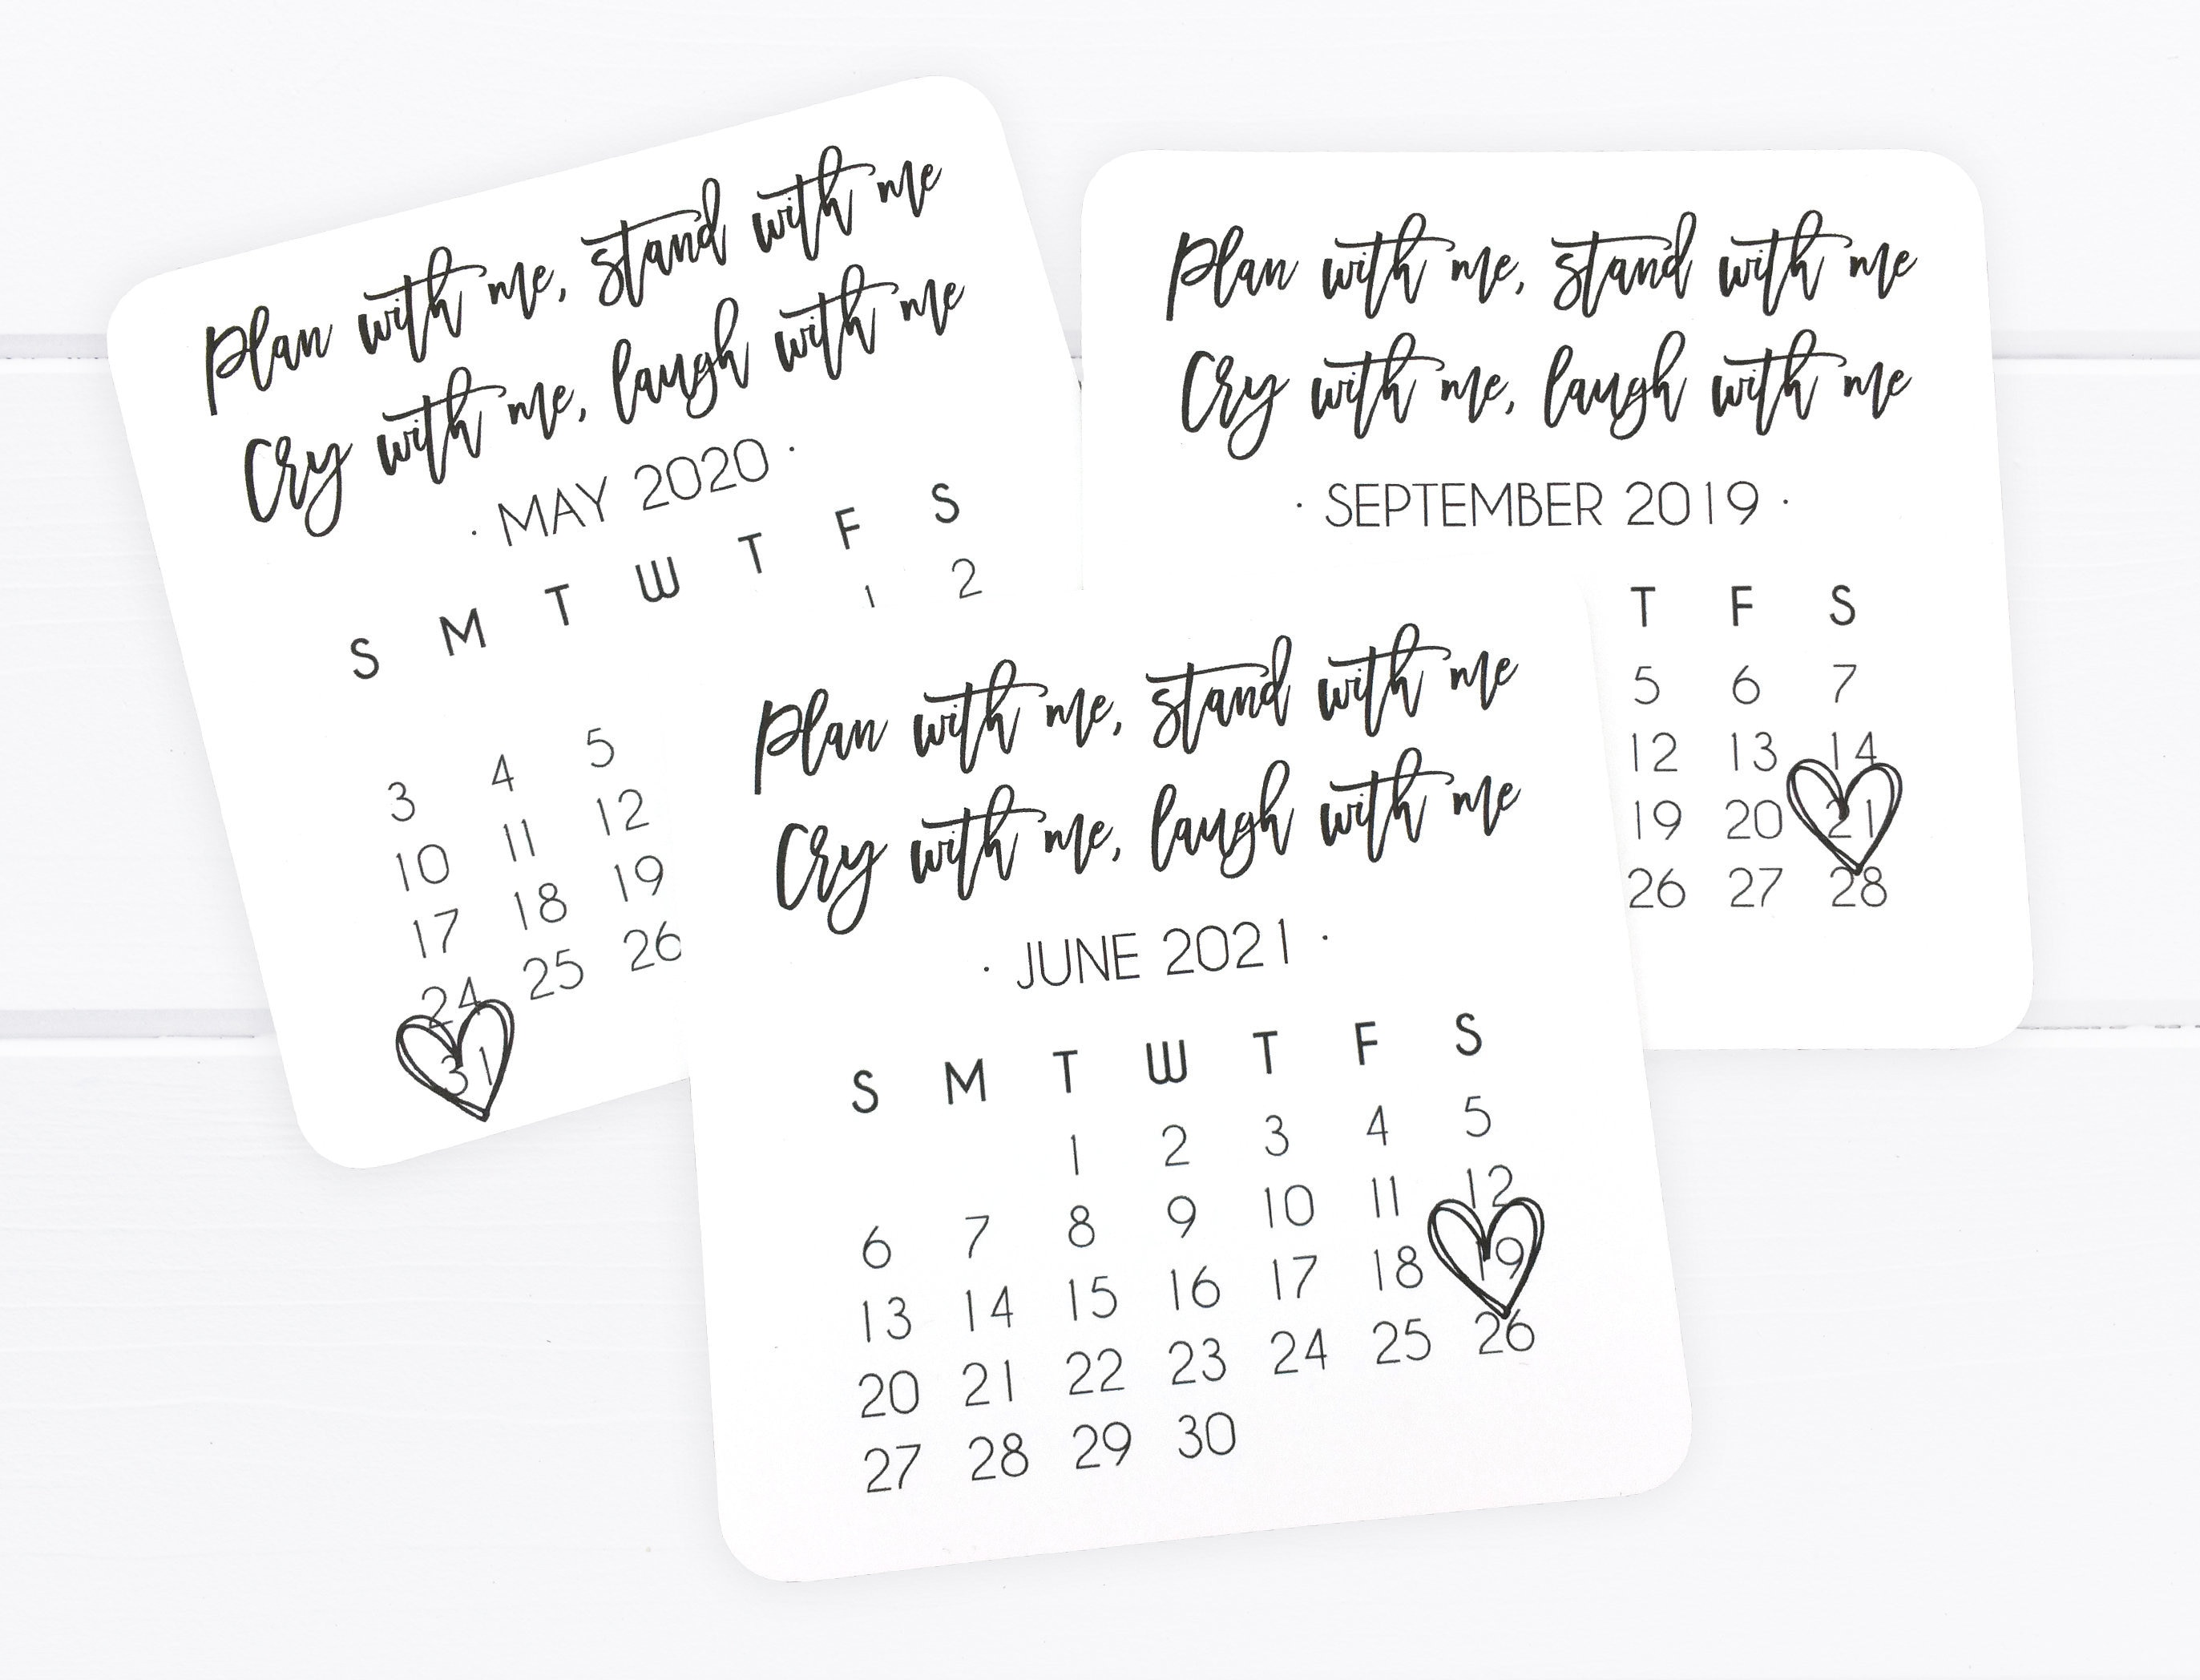 Bridesmaid Proposal Calendar, Bridesmaid Save the Date, Bridesmaid  Calendar, Plan With Me Stand With Me - (FPS00C2)